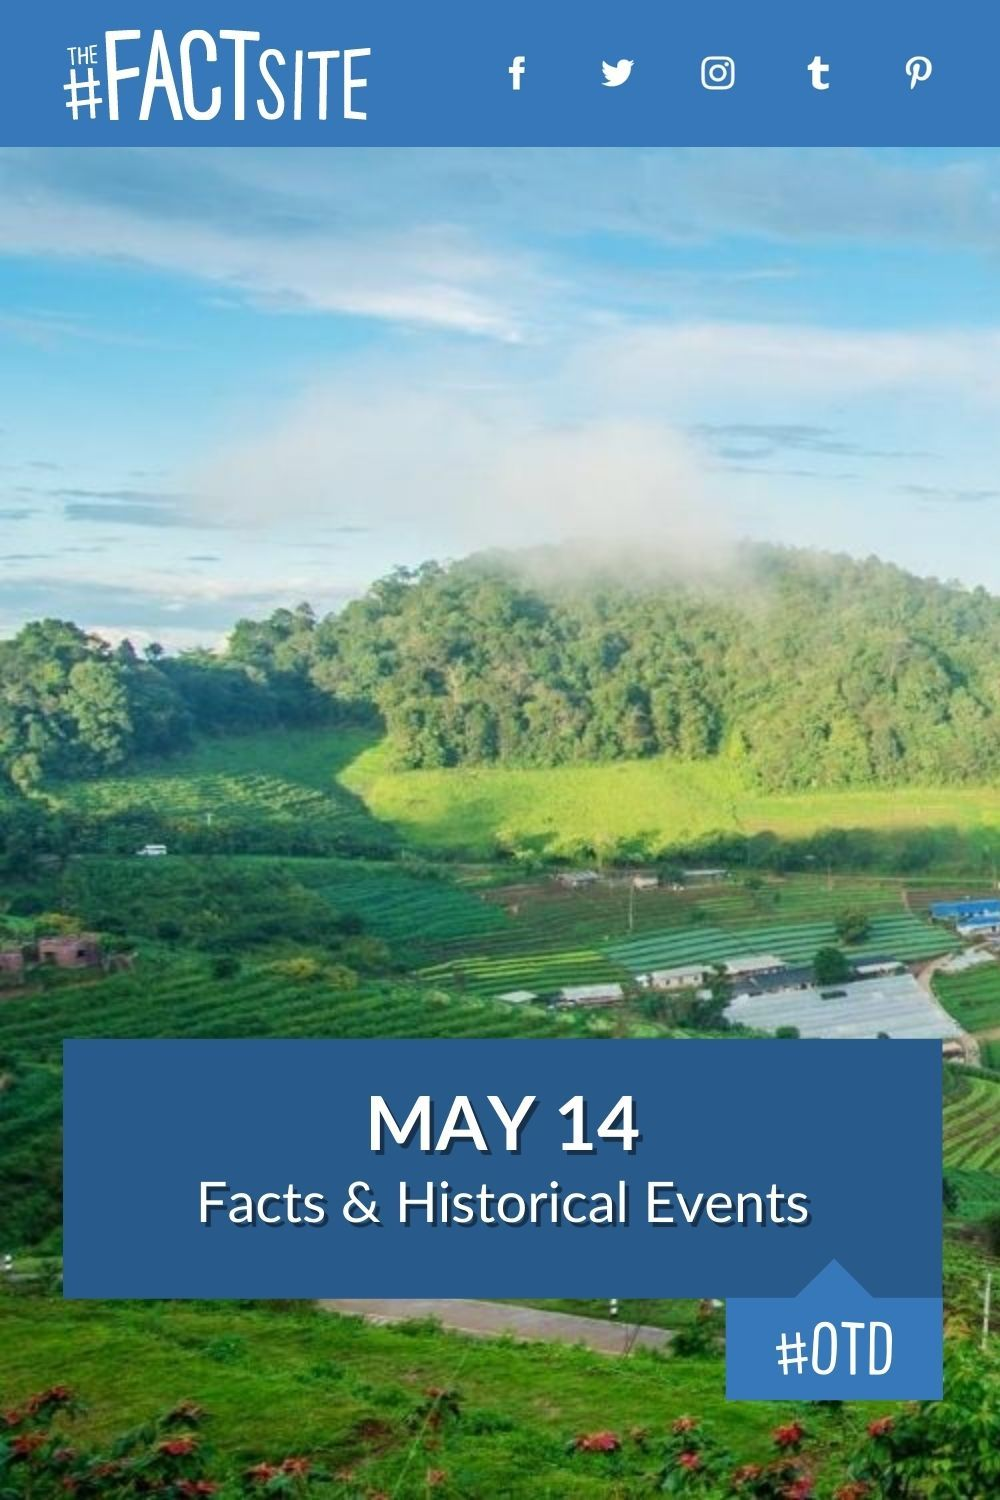 Facts & Historic Events That Happened on May 14